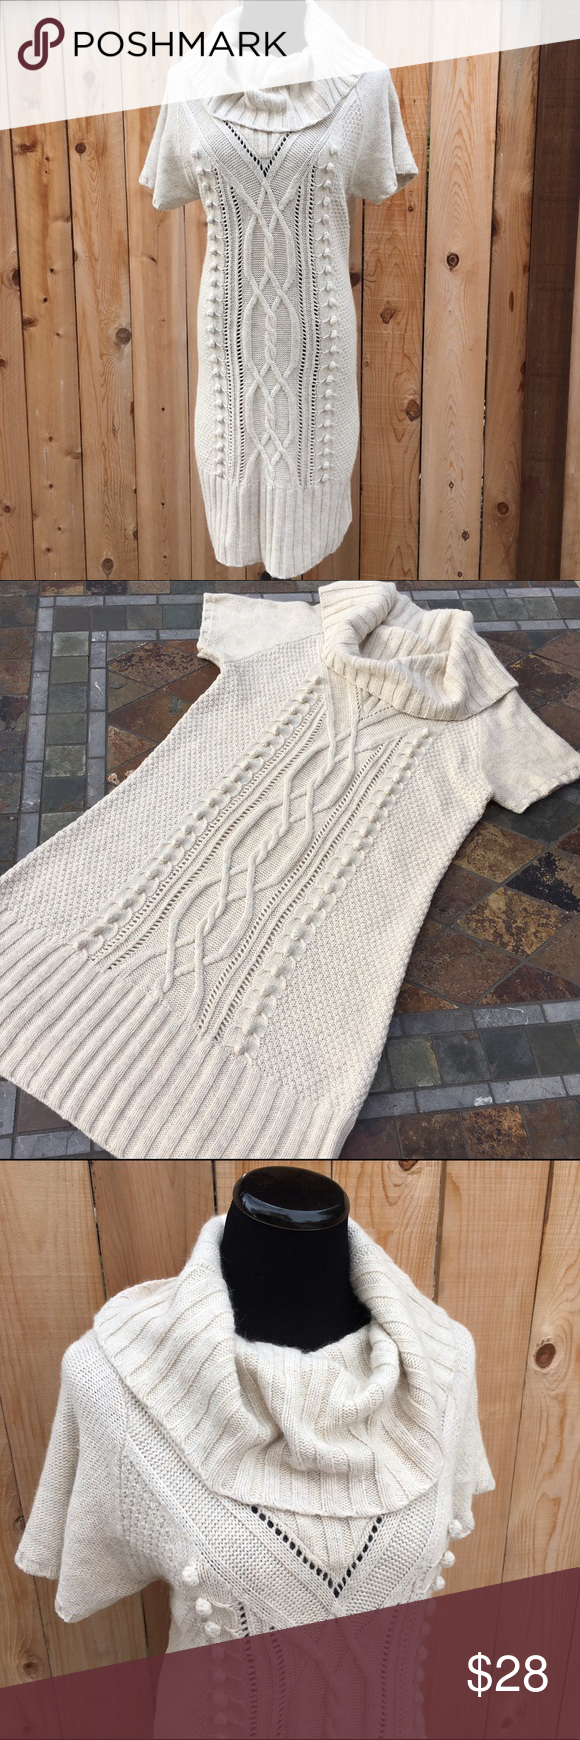 """Knit Cowl Neck Sweater Dress Knit dress is a cream color. Soft material content is 35% Cotton, 25% Viscose, 15% Polyamide, 15% Wool & 10% Angora. Measures 19.5"""" pit to pit & 40"""" long. In excellent condition with no spots or damage. H&M Dresses"""